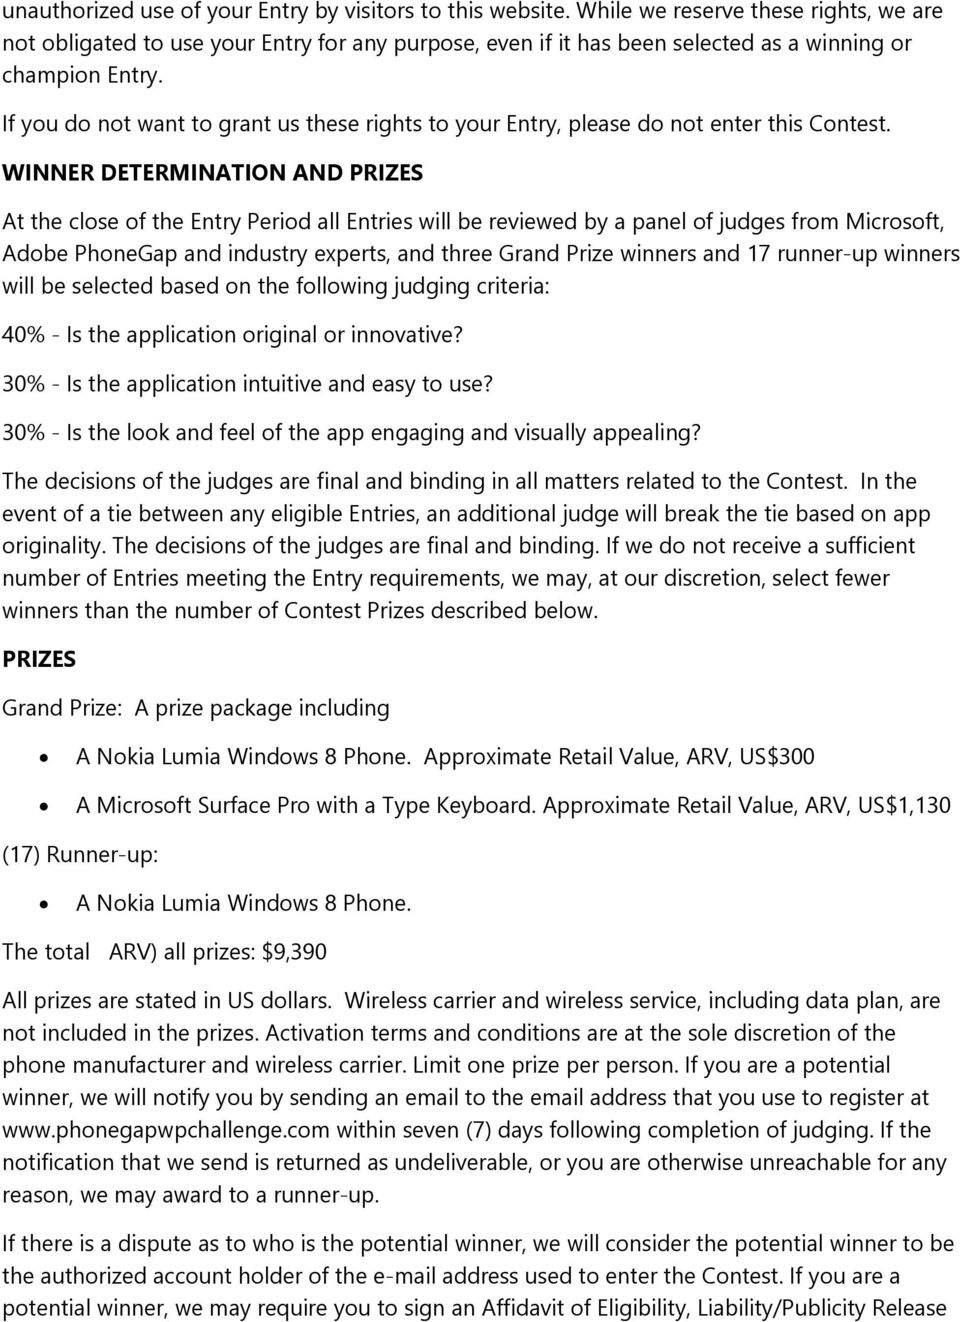 If you do not want to grant us these rights to your Entry, please do not enter this Contest.